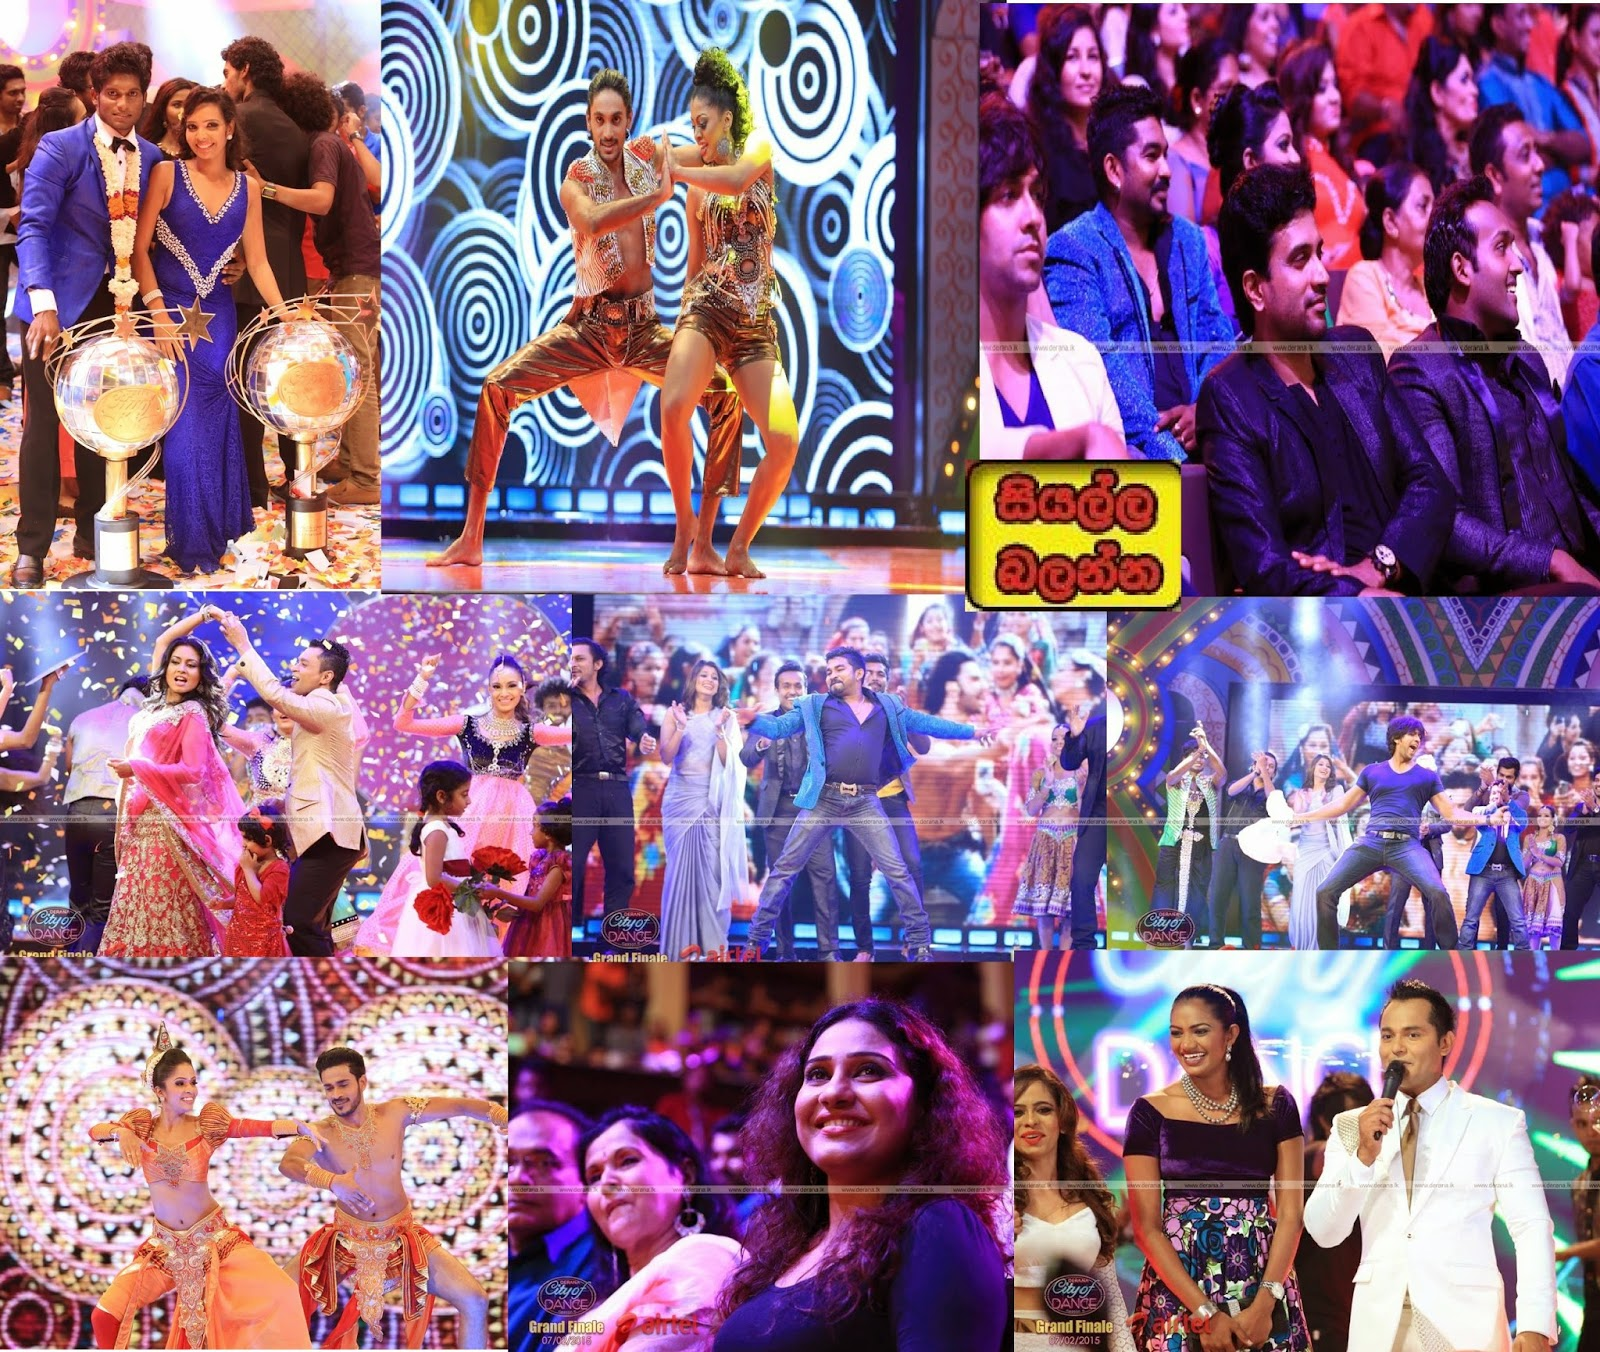 http://picture.gossiplankahotnews.com/2015/02/derana-city-of-dance-grand-finale.html